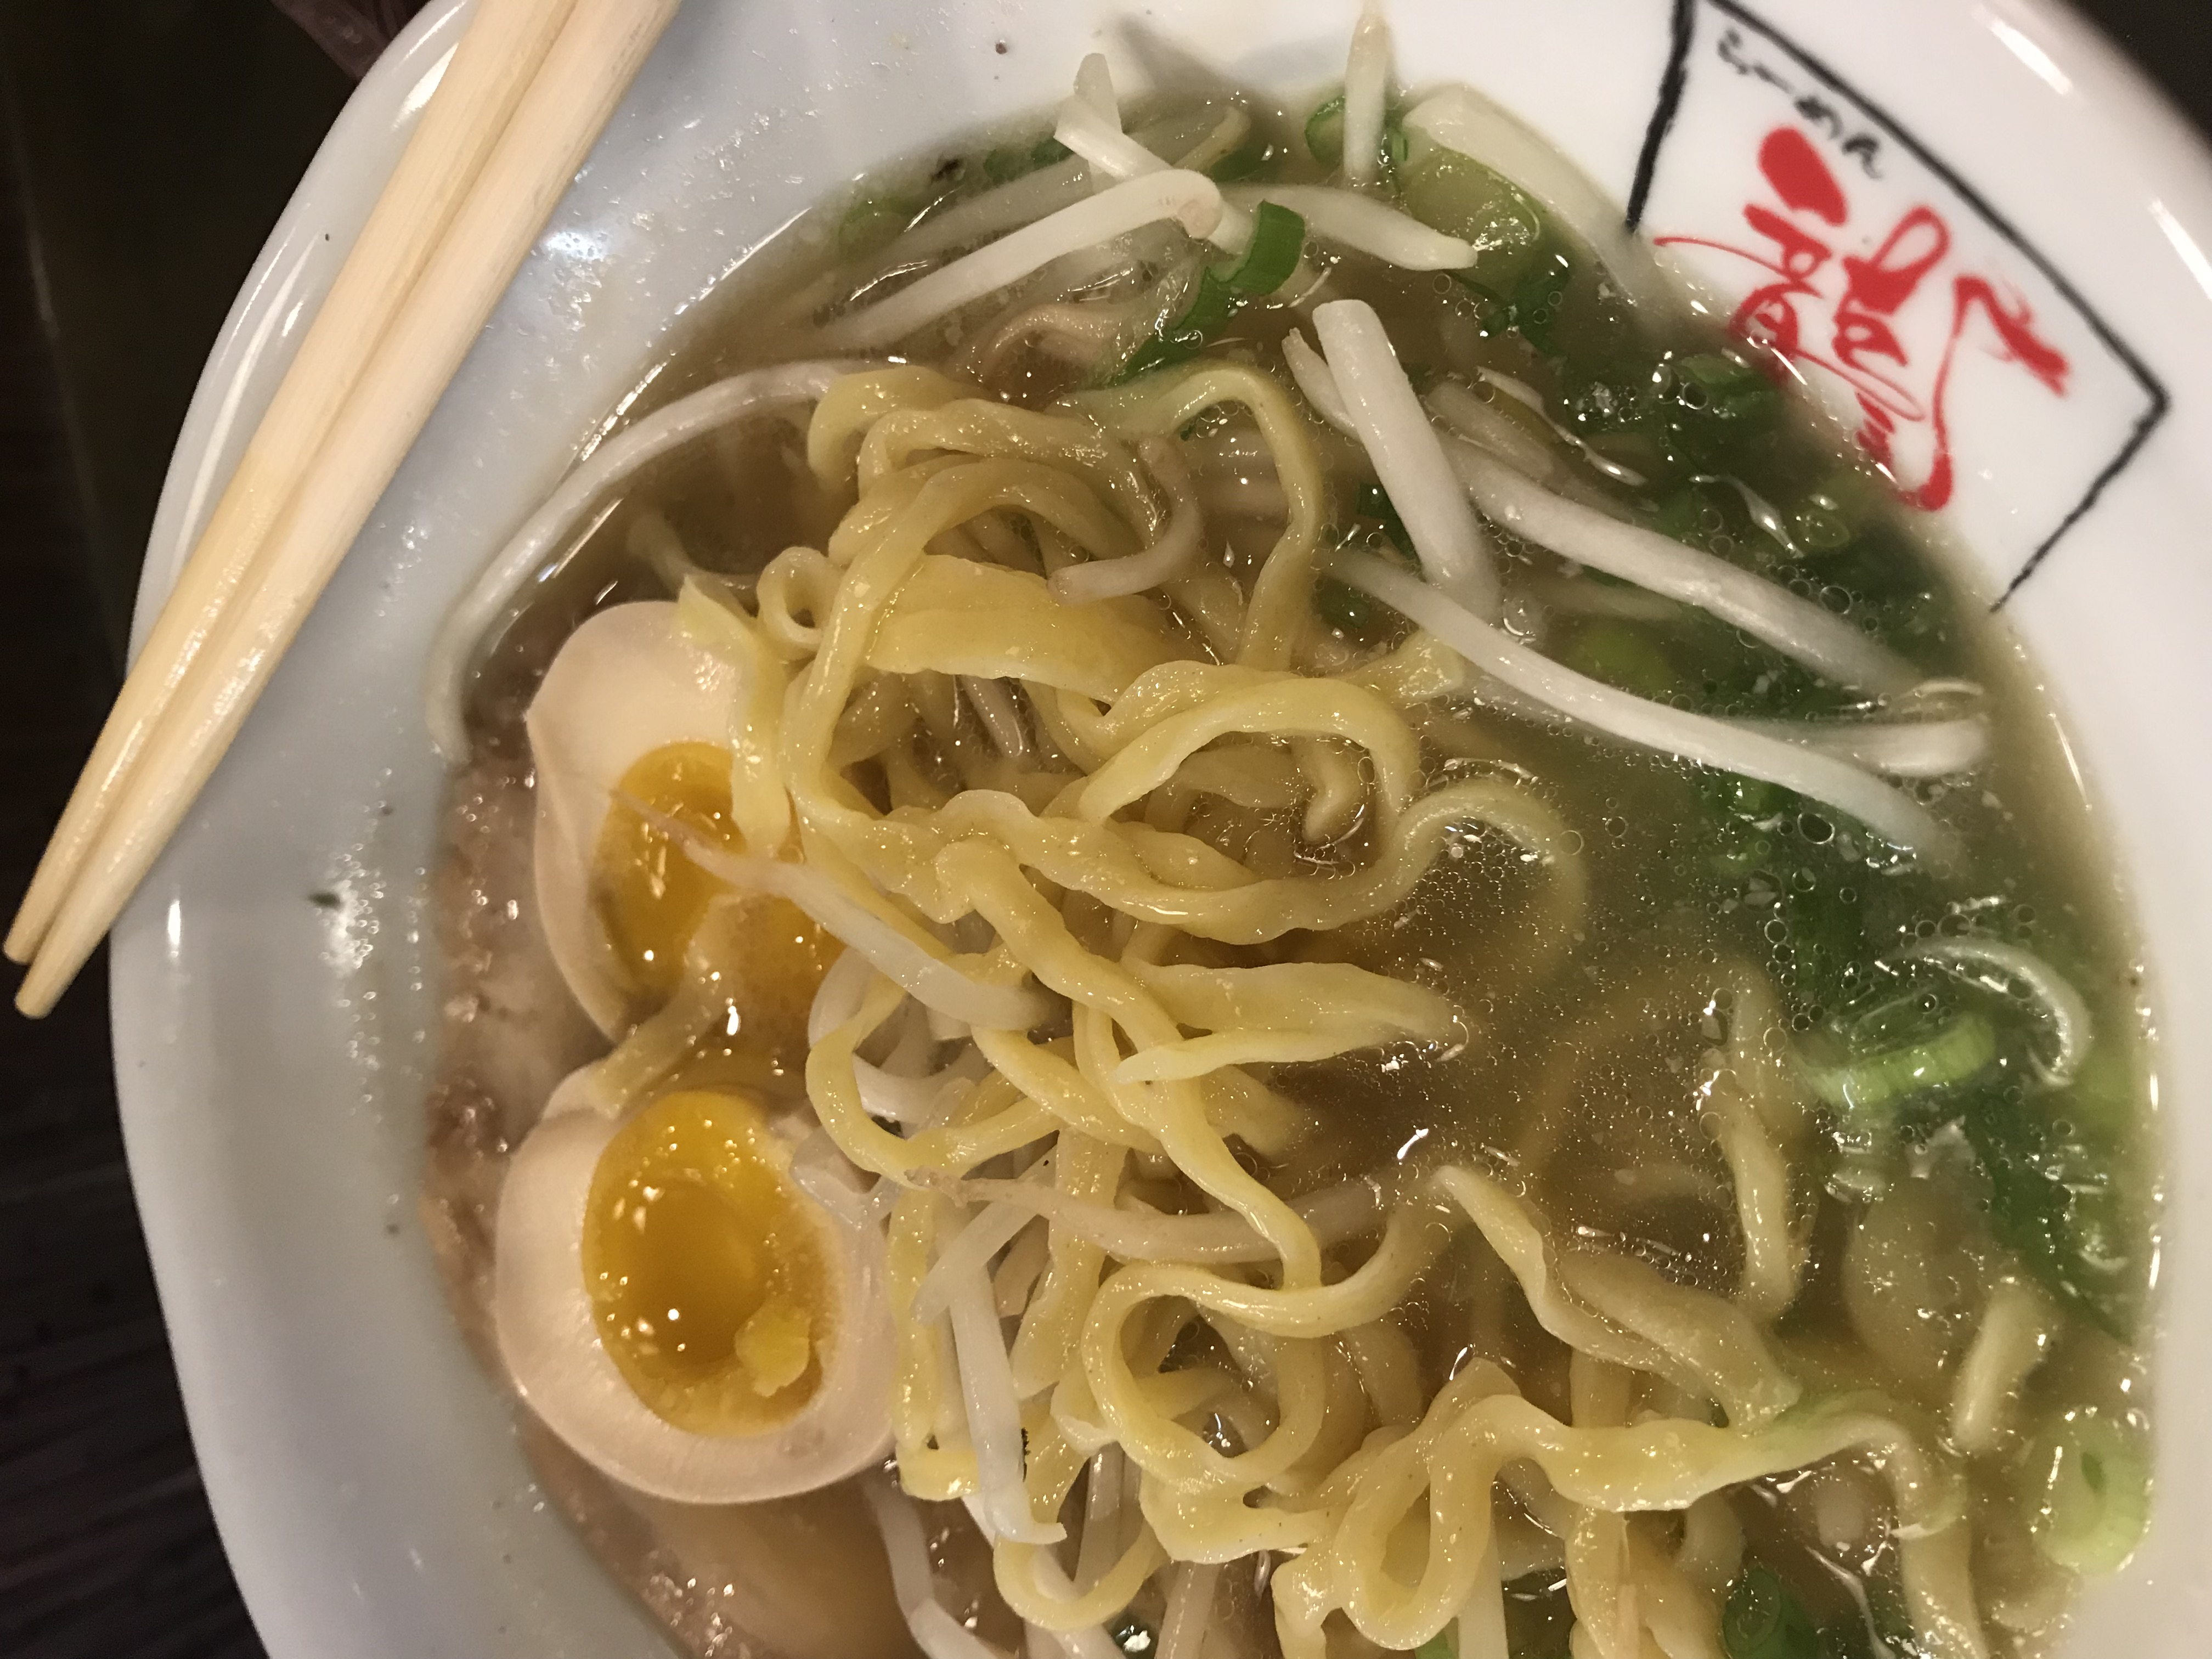 A bowl of ramen with chopsticks on the edge of the bowl.